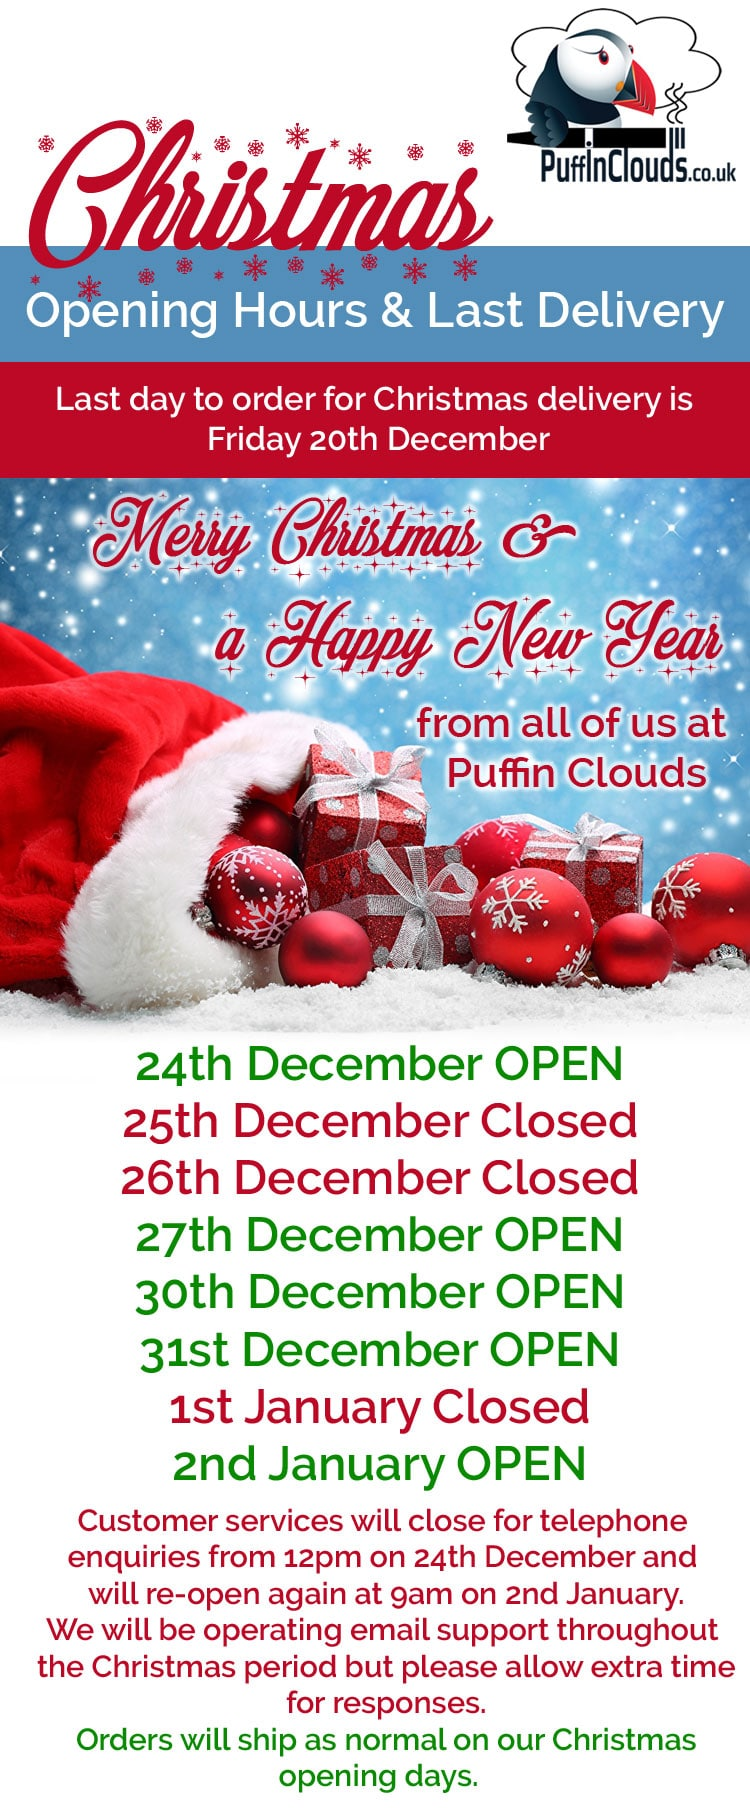 Christmas 2019 Openng Hours and Last Delivery Dates for Puffin Clouds UK